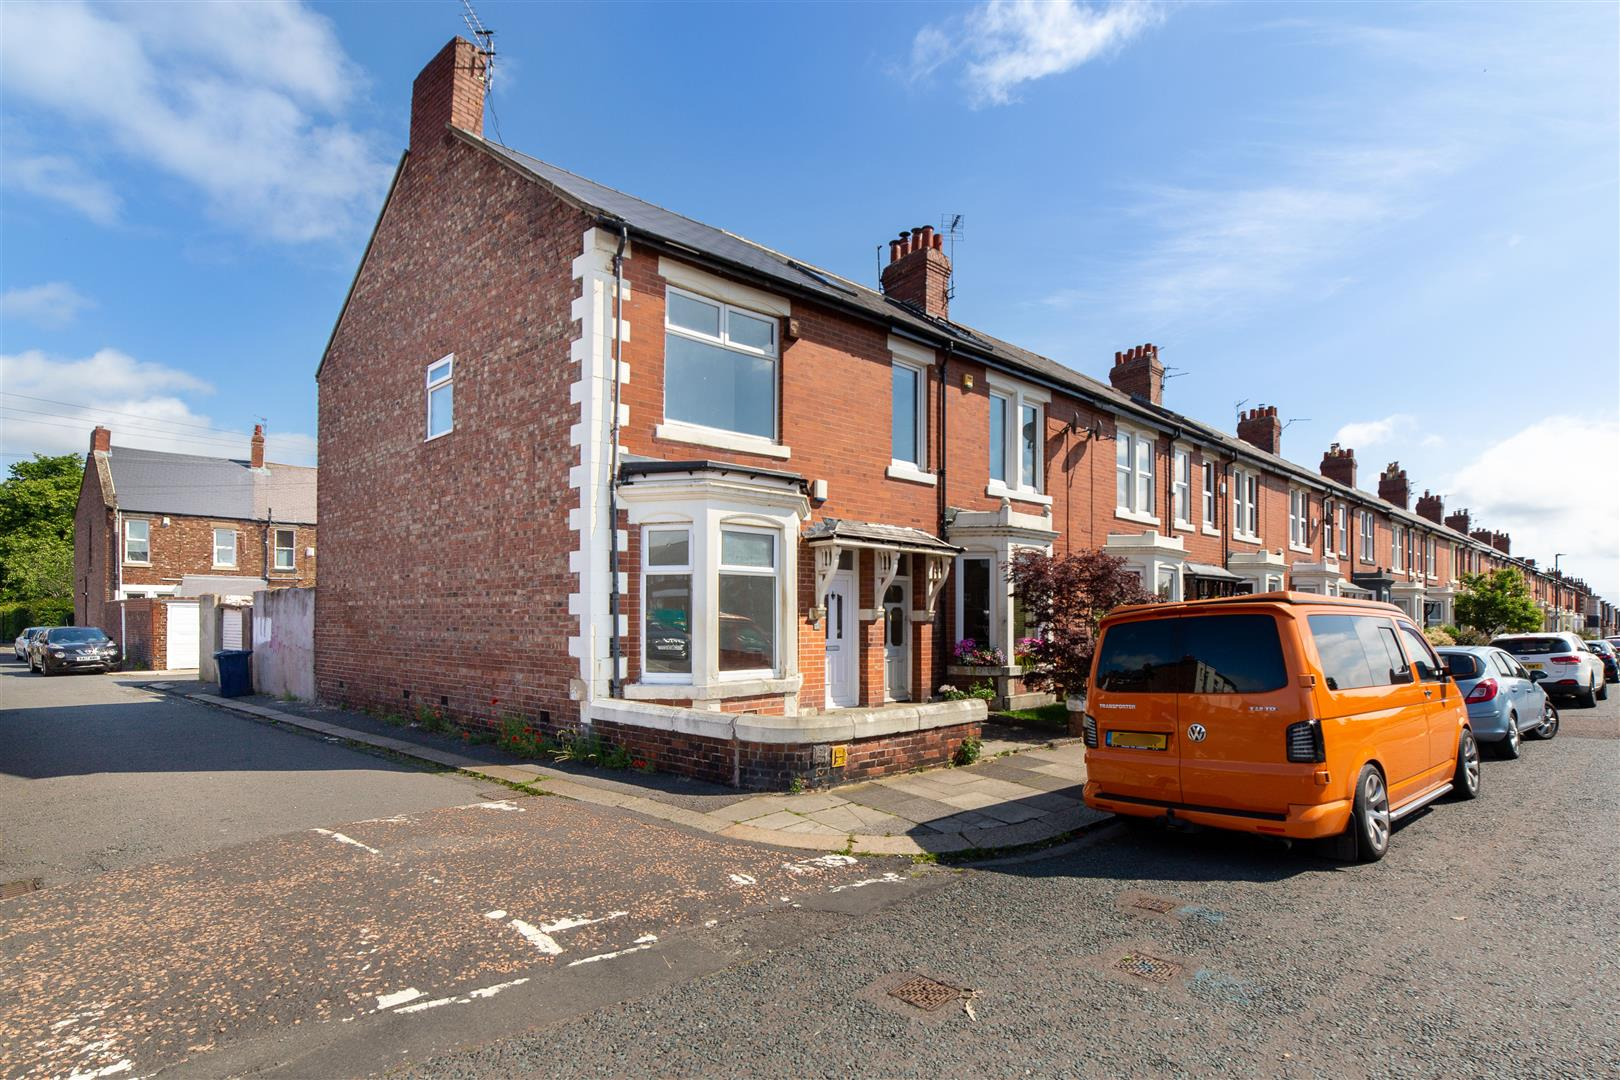 5 bed end of terrace house for sale in Sackville Road, Heaton, NE6